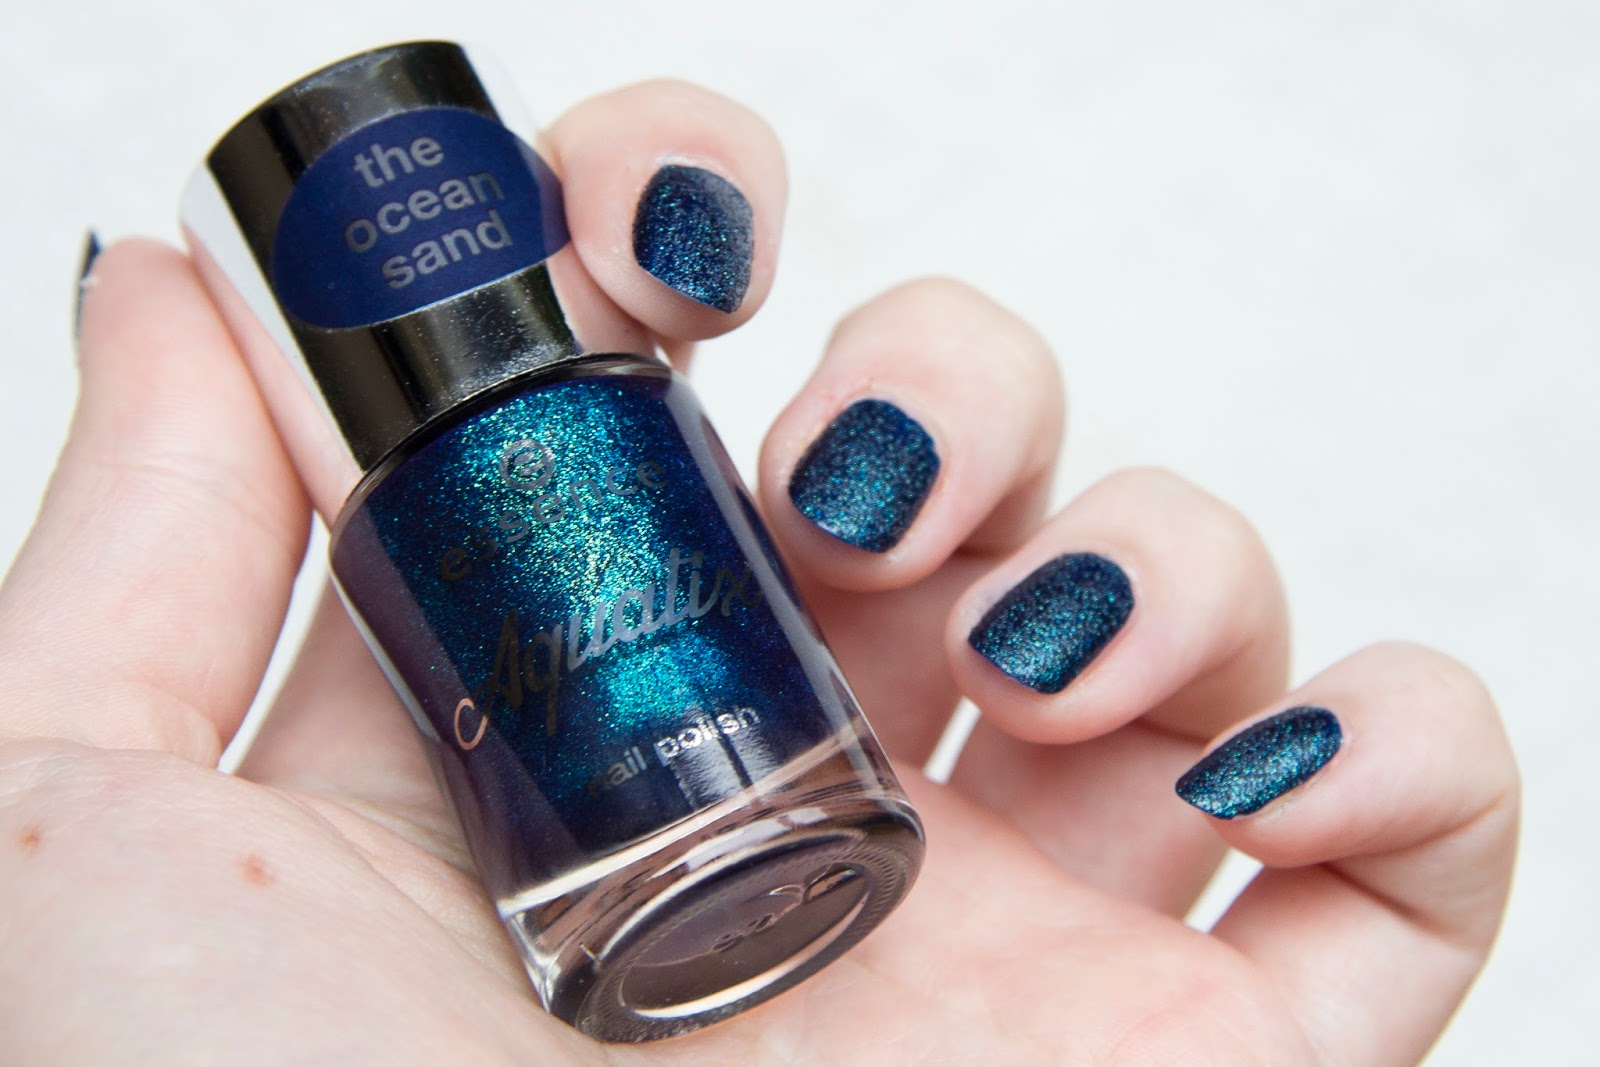 manucure nail art édition limitée Essence aquatix vernis mat texturé under the water